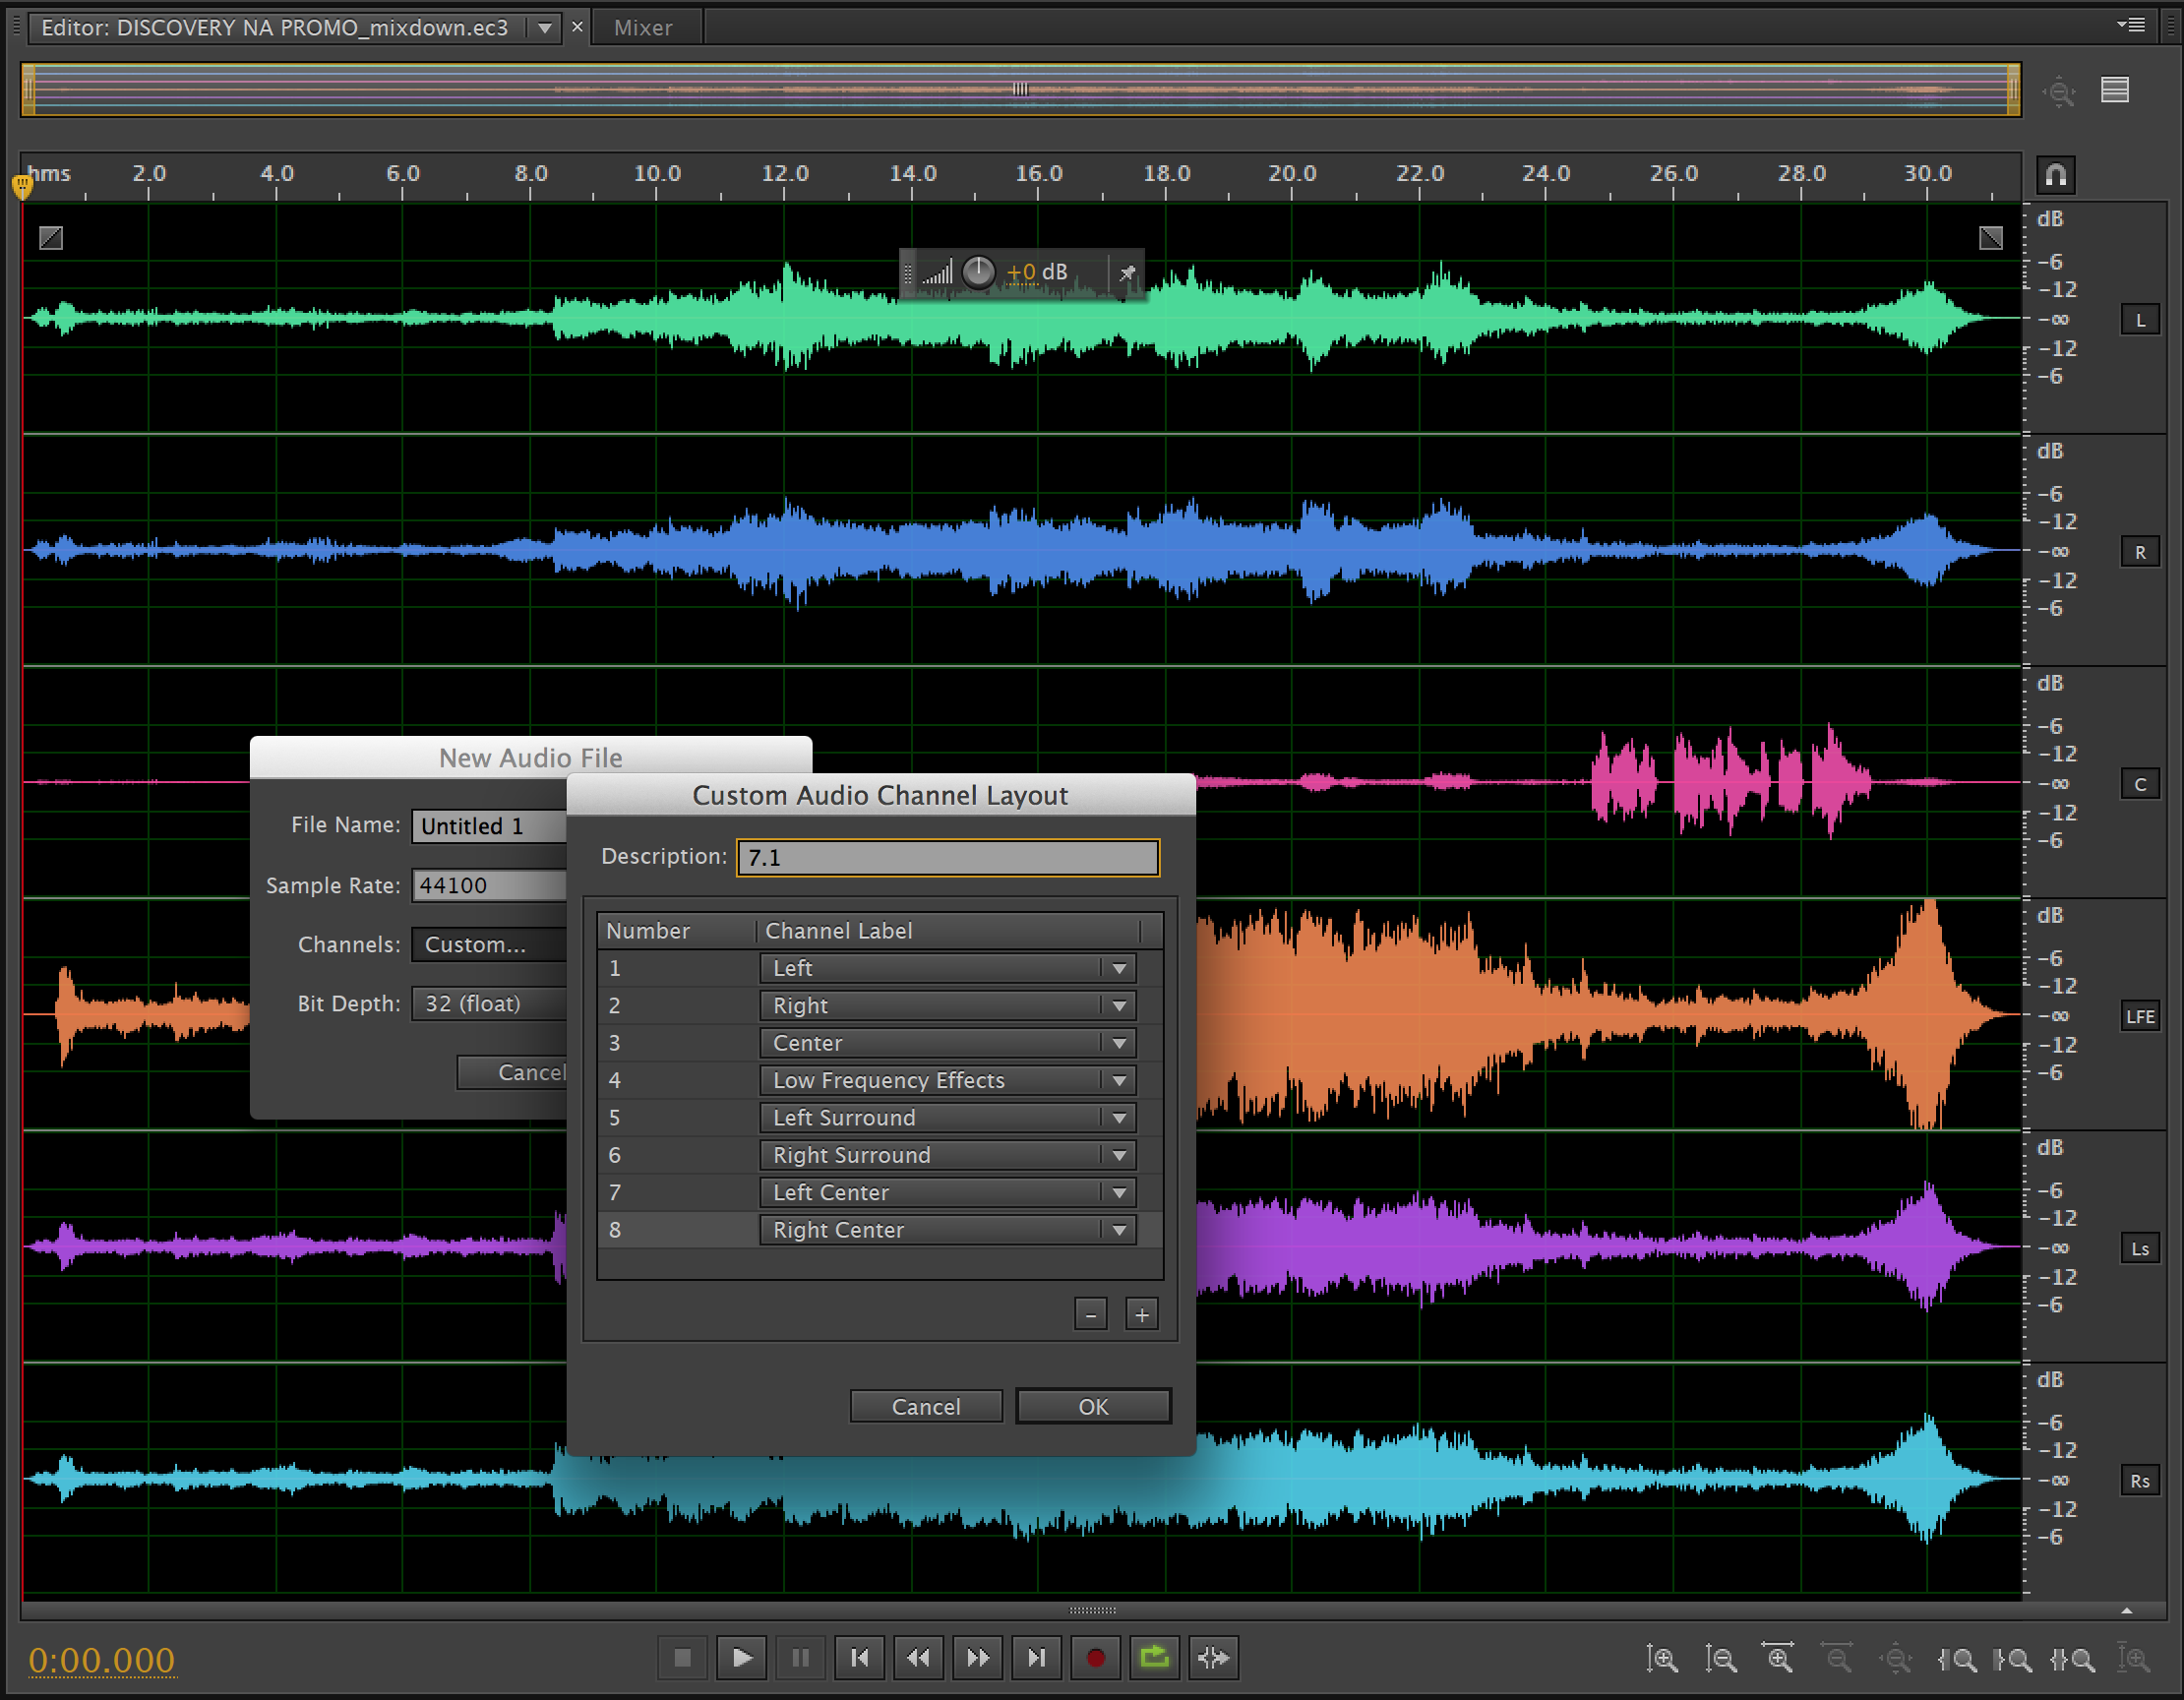 Adobe Audition CC 2019 Cracked For Windows and macOS Free Download